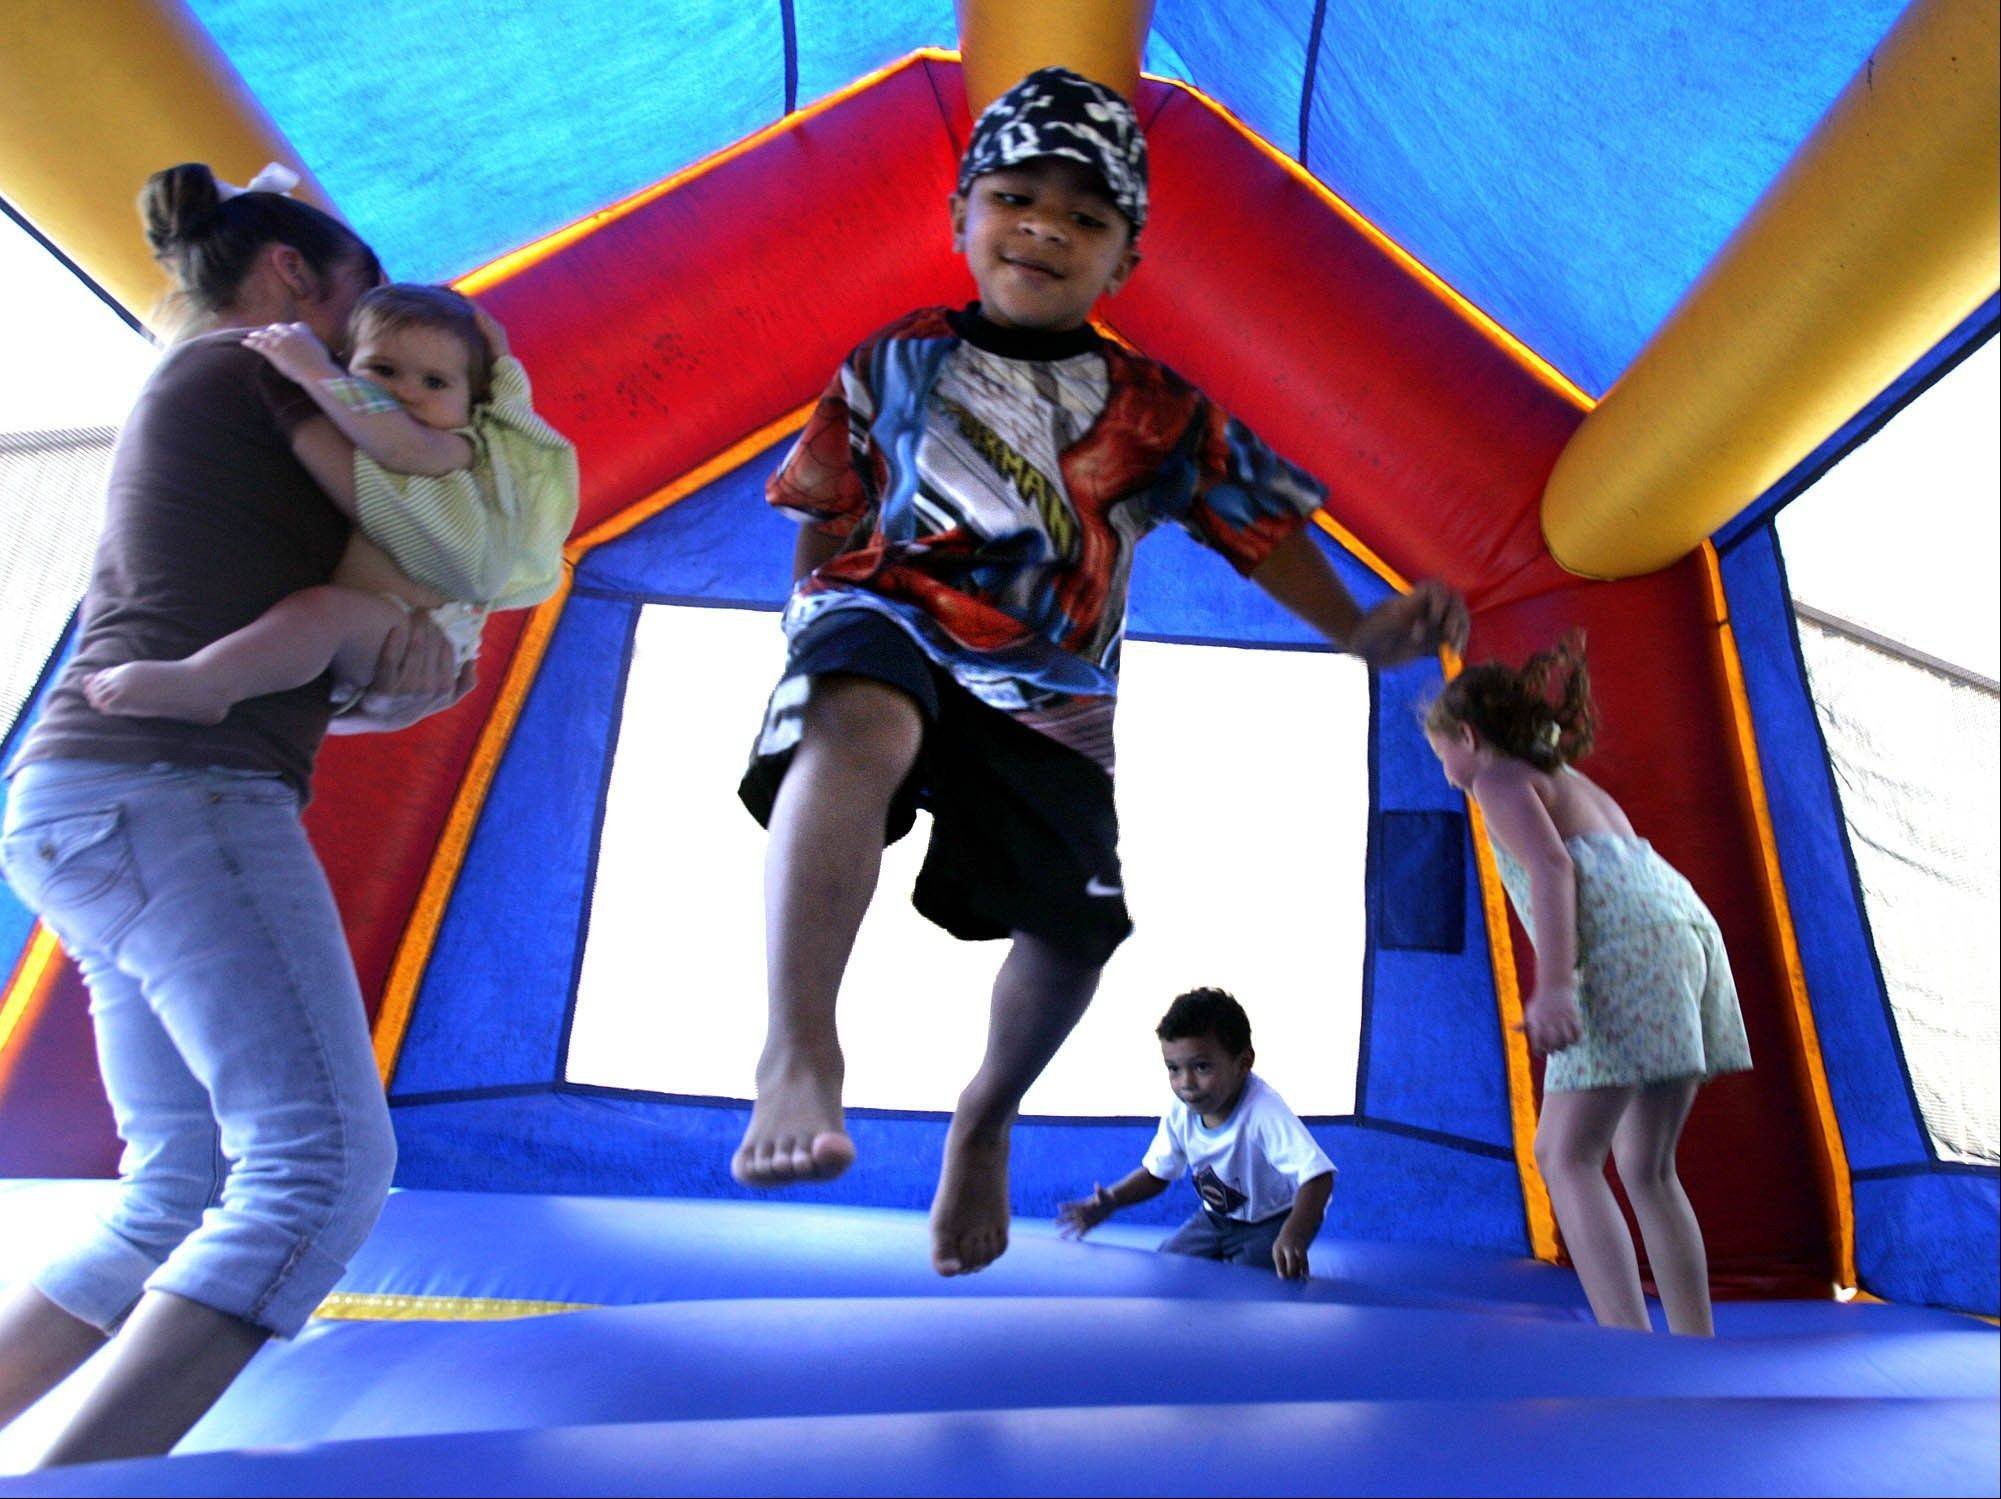 A nationwide study has found inflatable bounce houses can be dangerous and the number of kids injured in related accidents has soared 15-fold in recent years.